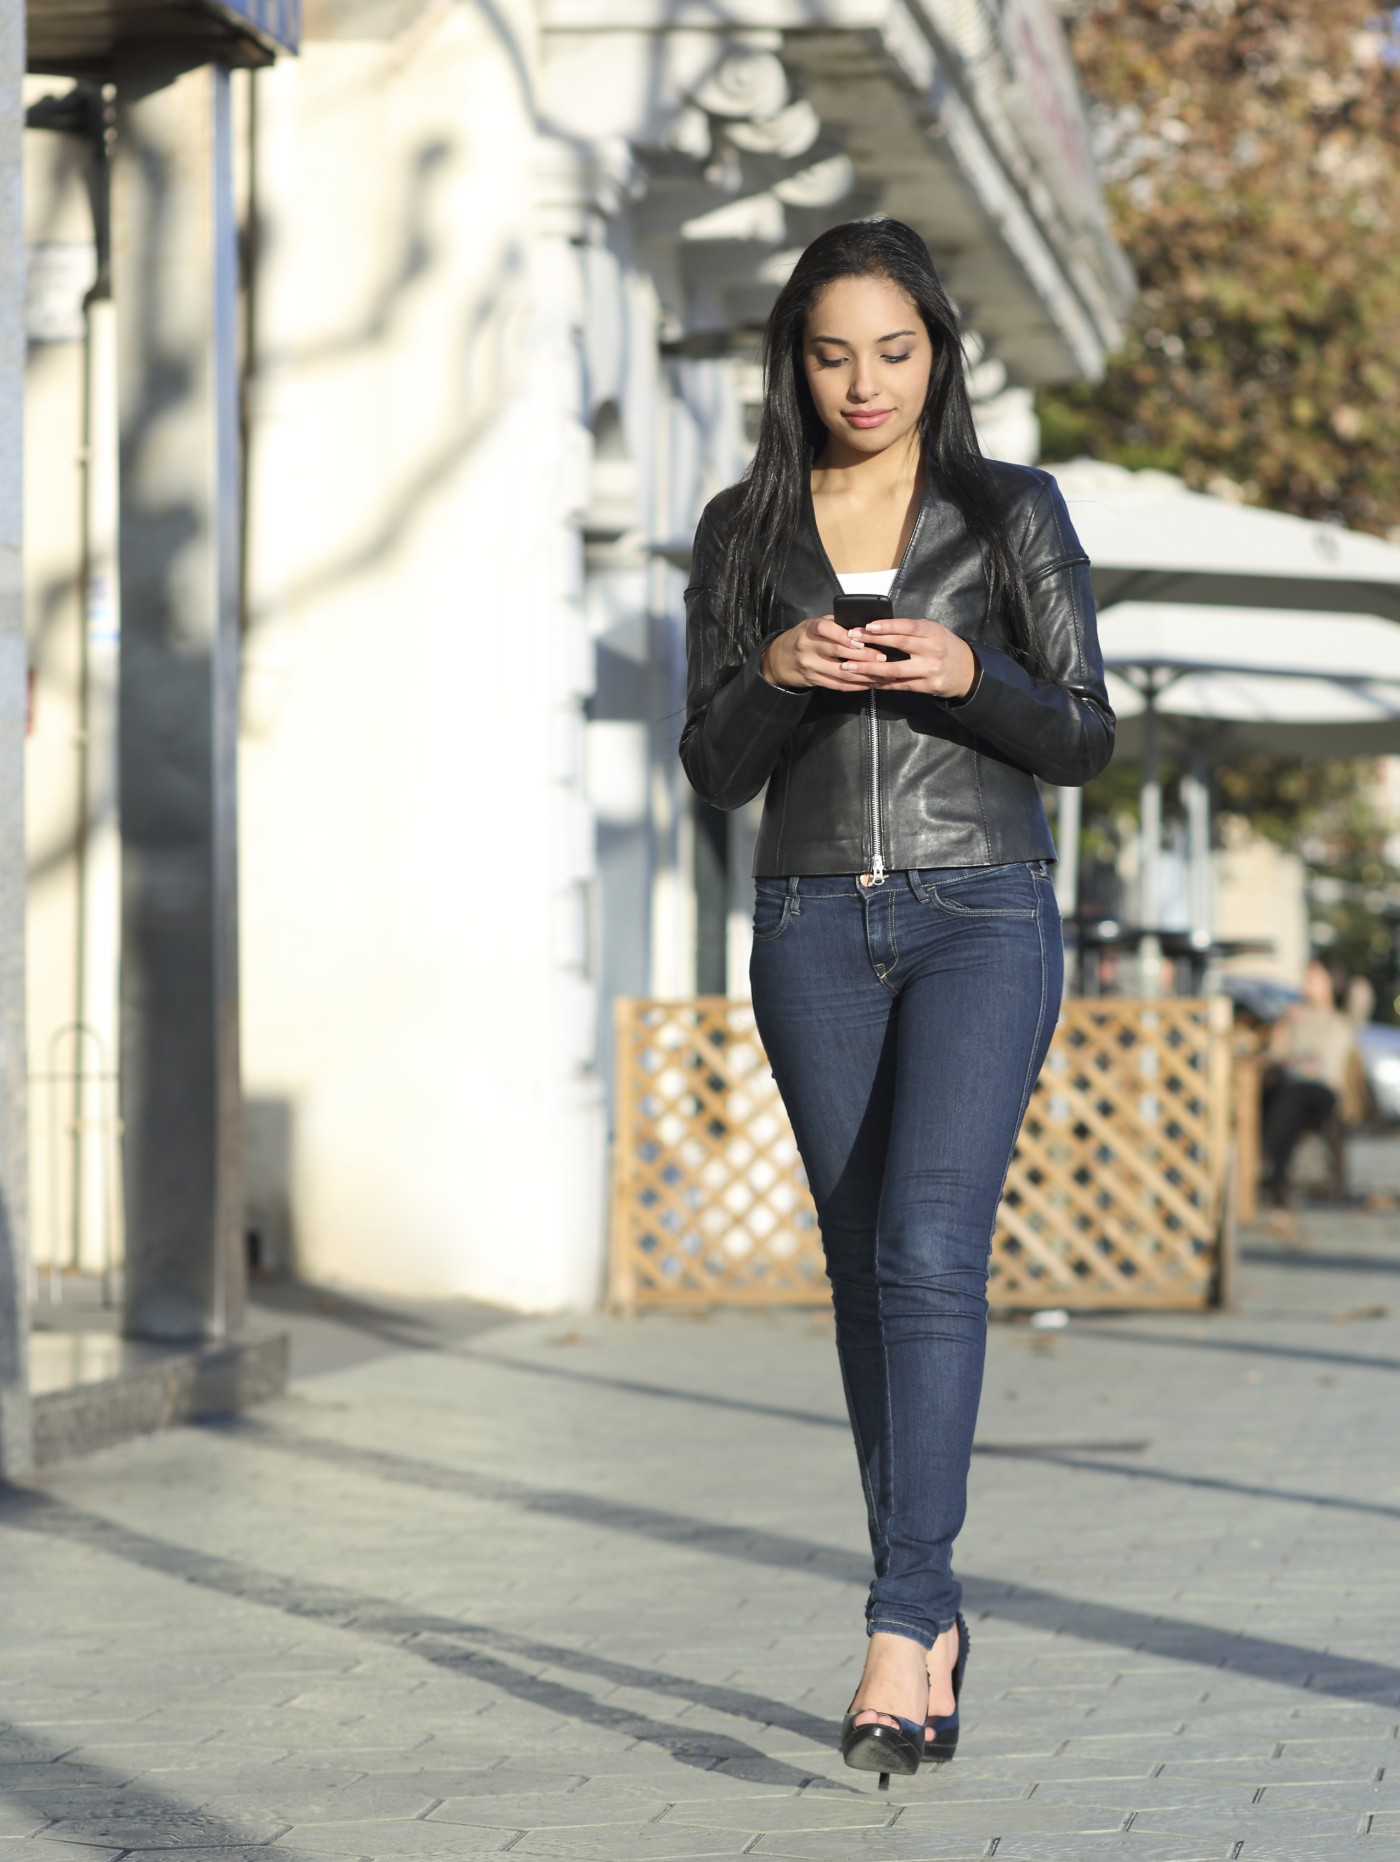 Woman texting on a smartphone while walking